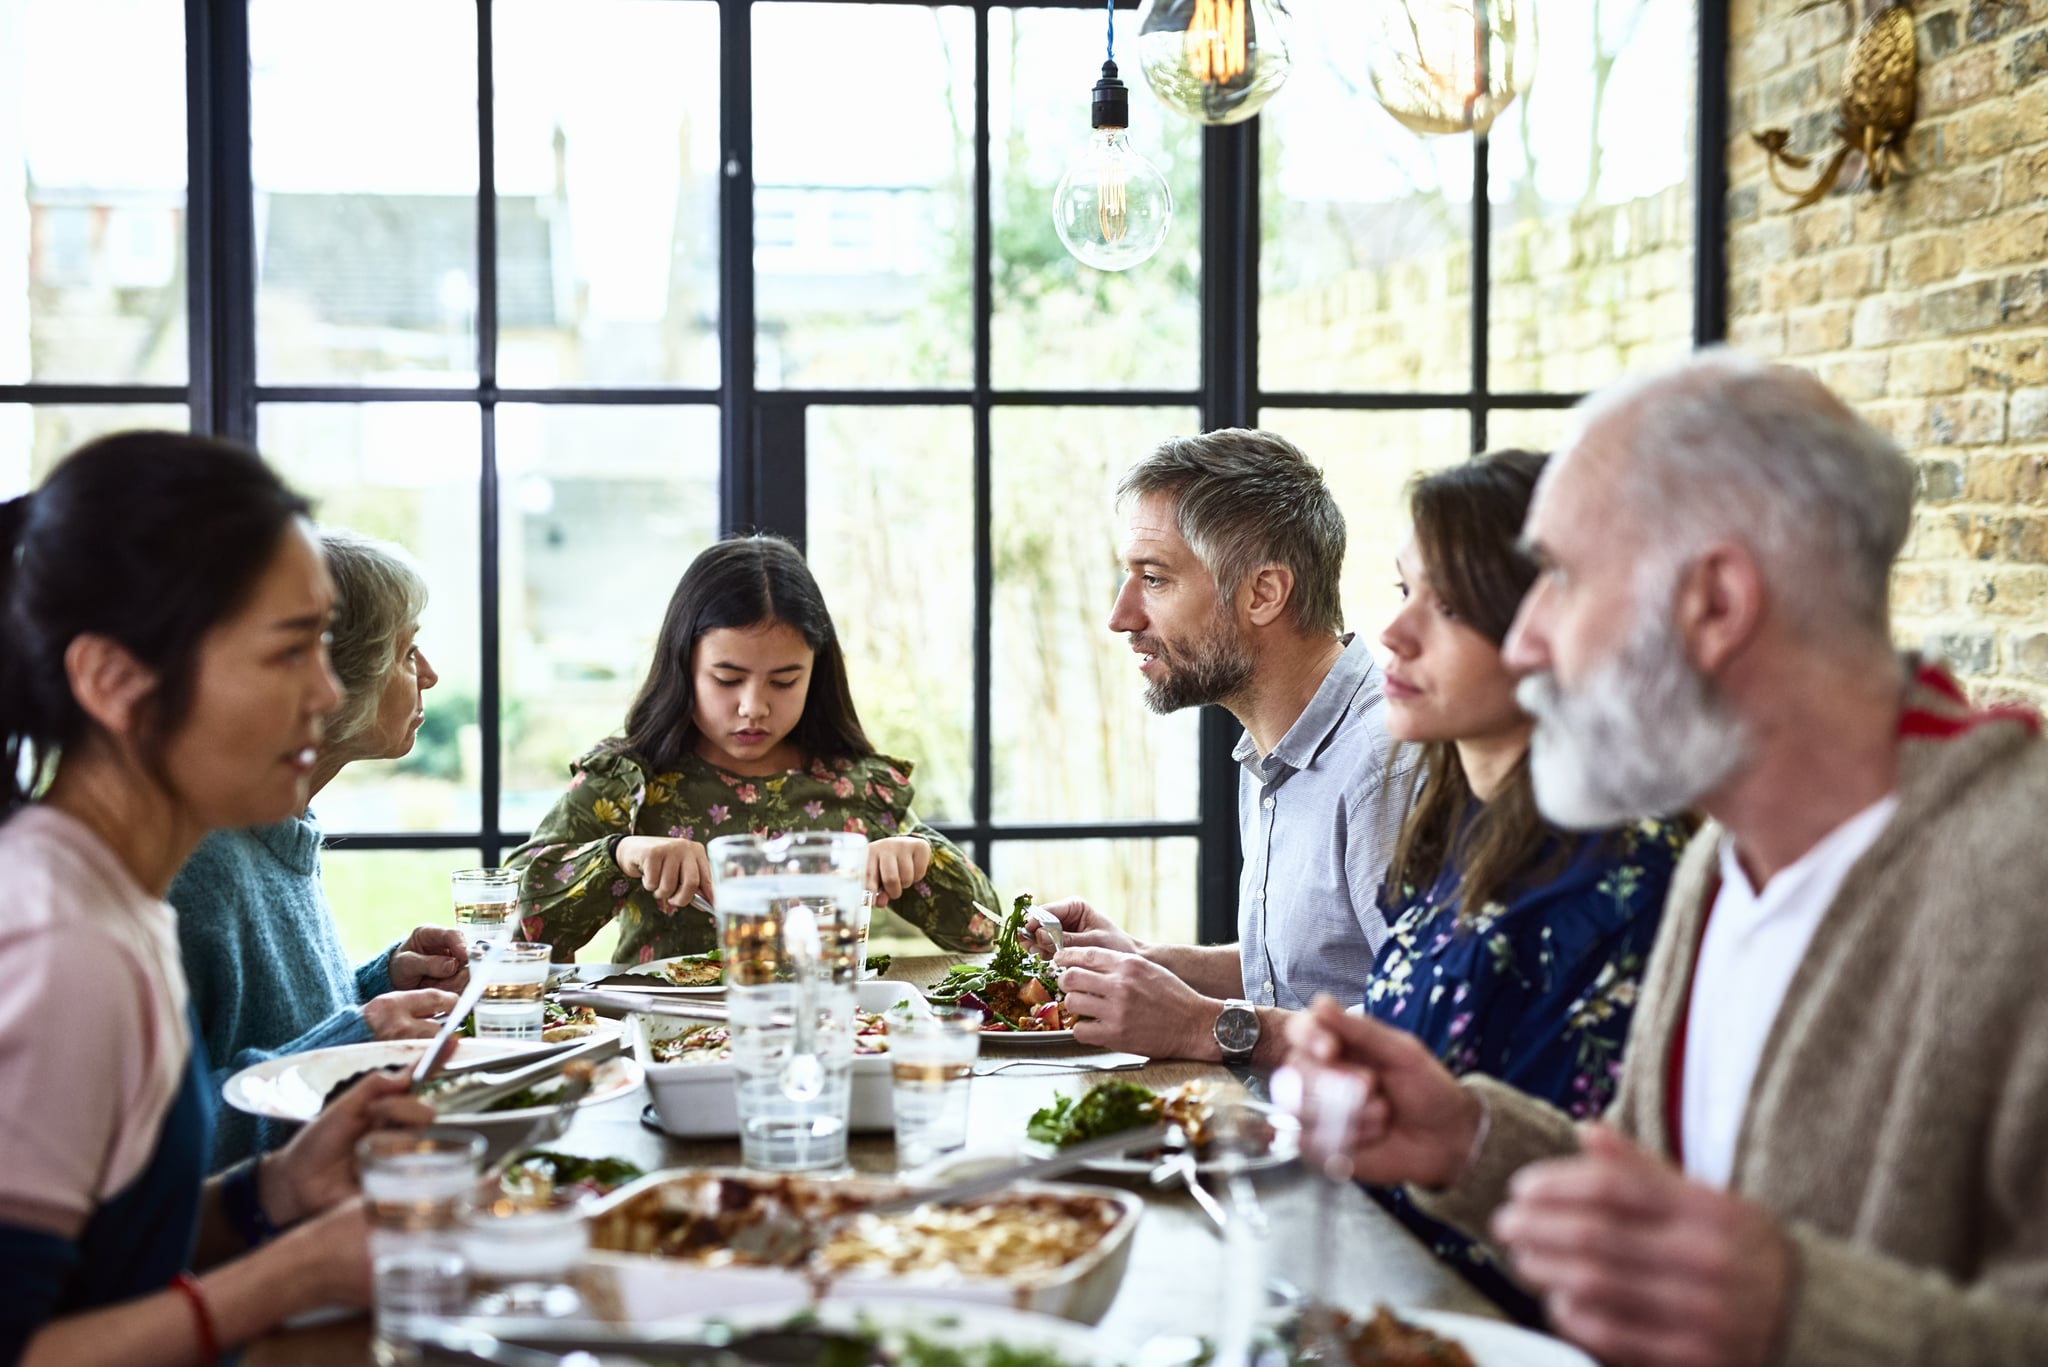 Social gathering between grandparents, adult offspring and pre teen granddaughter, sitting and eating dinner around dining room table, enjoying spending quality time over a leisurely meal, relaxed and friendly